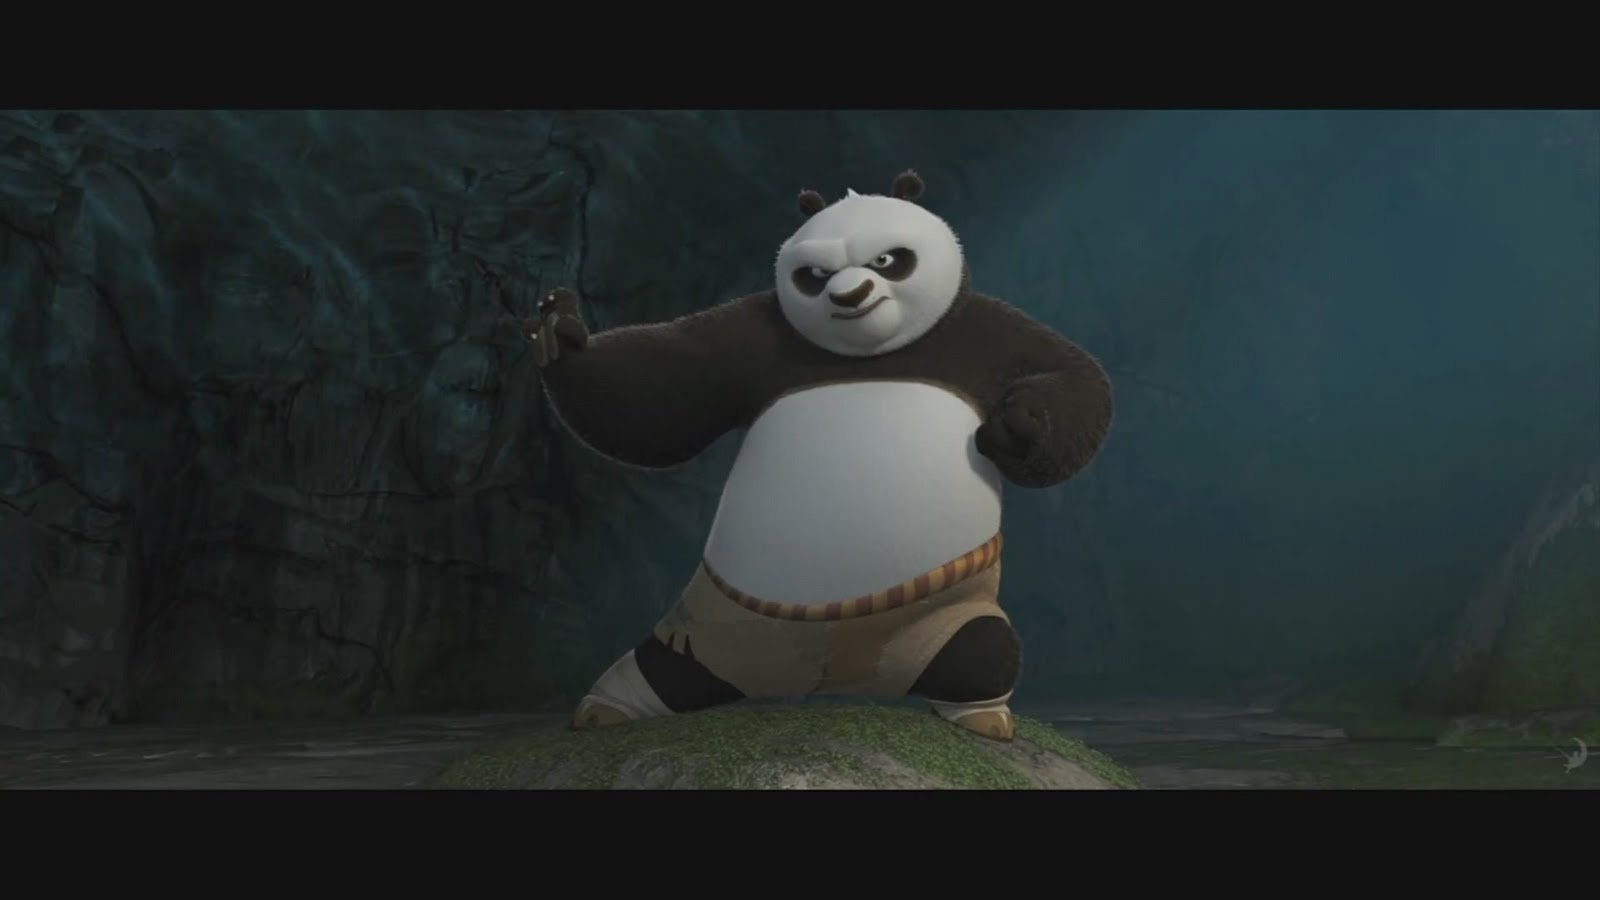 http://1.bp.blogspot.com/-xHewHtx6Psk/TdMsMnebGWI/AAAAAAAAAGk/2PPW1FRjhaE/s1600/Kung+Fu+Panda+2+Movie+Trailer+Official+%2528HD%2529.mp40003.jpg